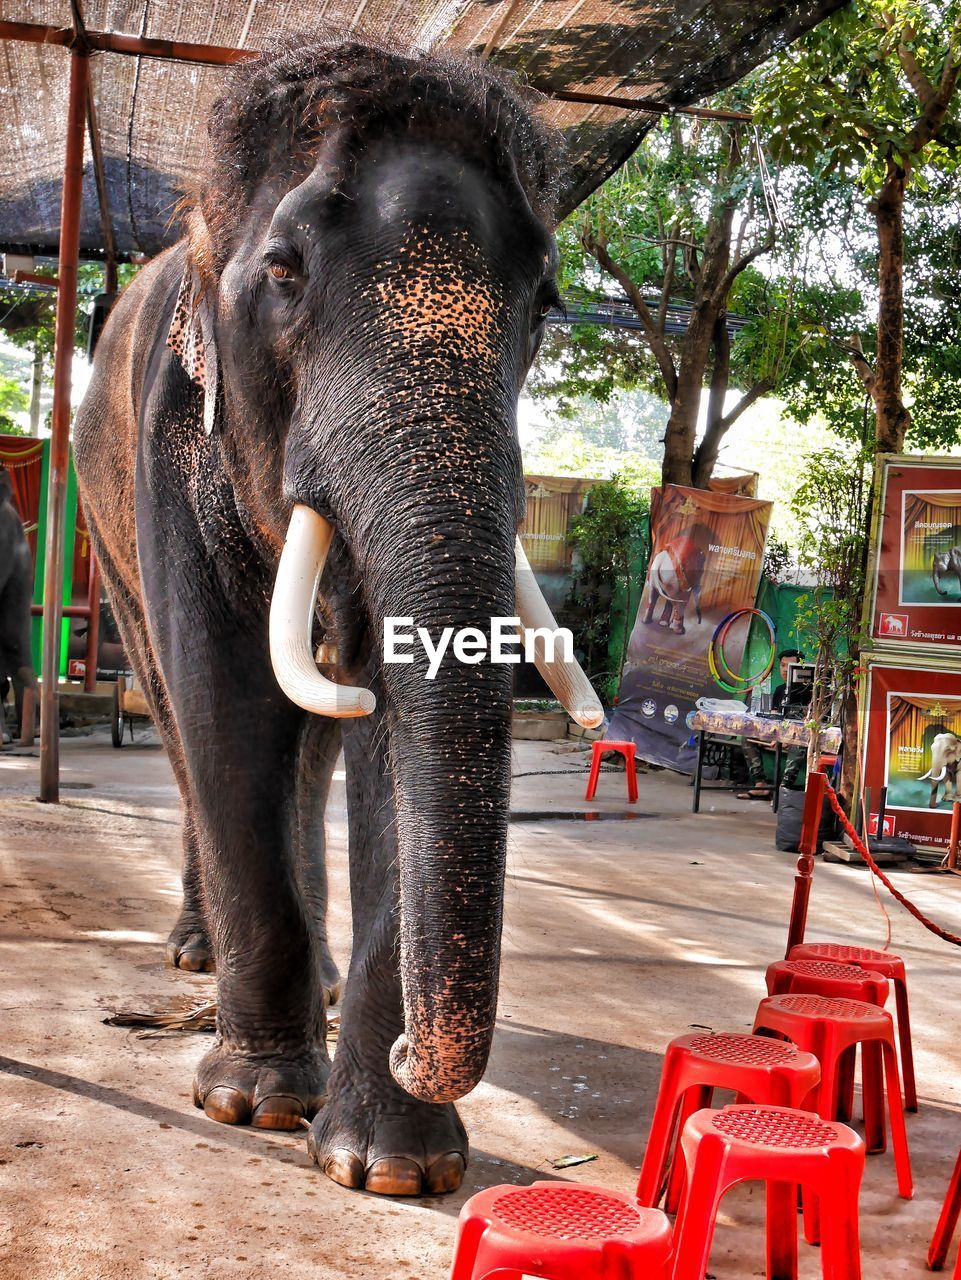 elephant, animal themes, animal, vertebrate, mammal, day, tree, animal wildlife, one animal, animals in captivity, outdoors, plant, animal trunk, animal body part, zoo, nature, animals in the wild, real people, built structure, herbivorous